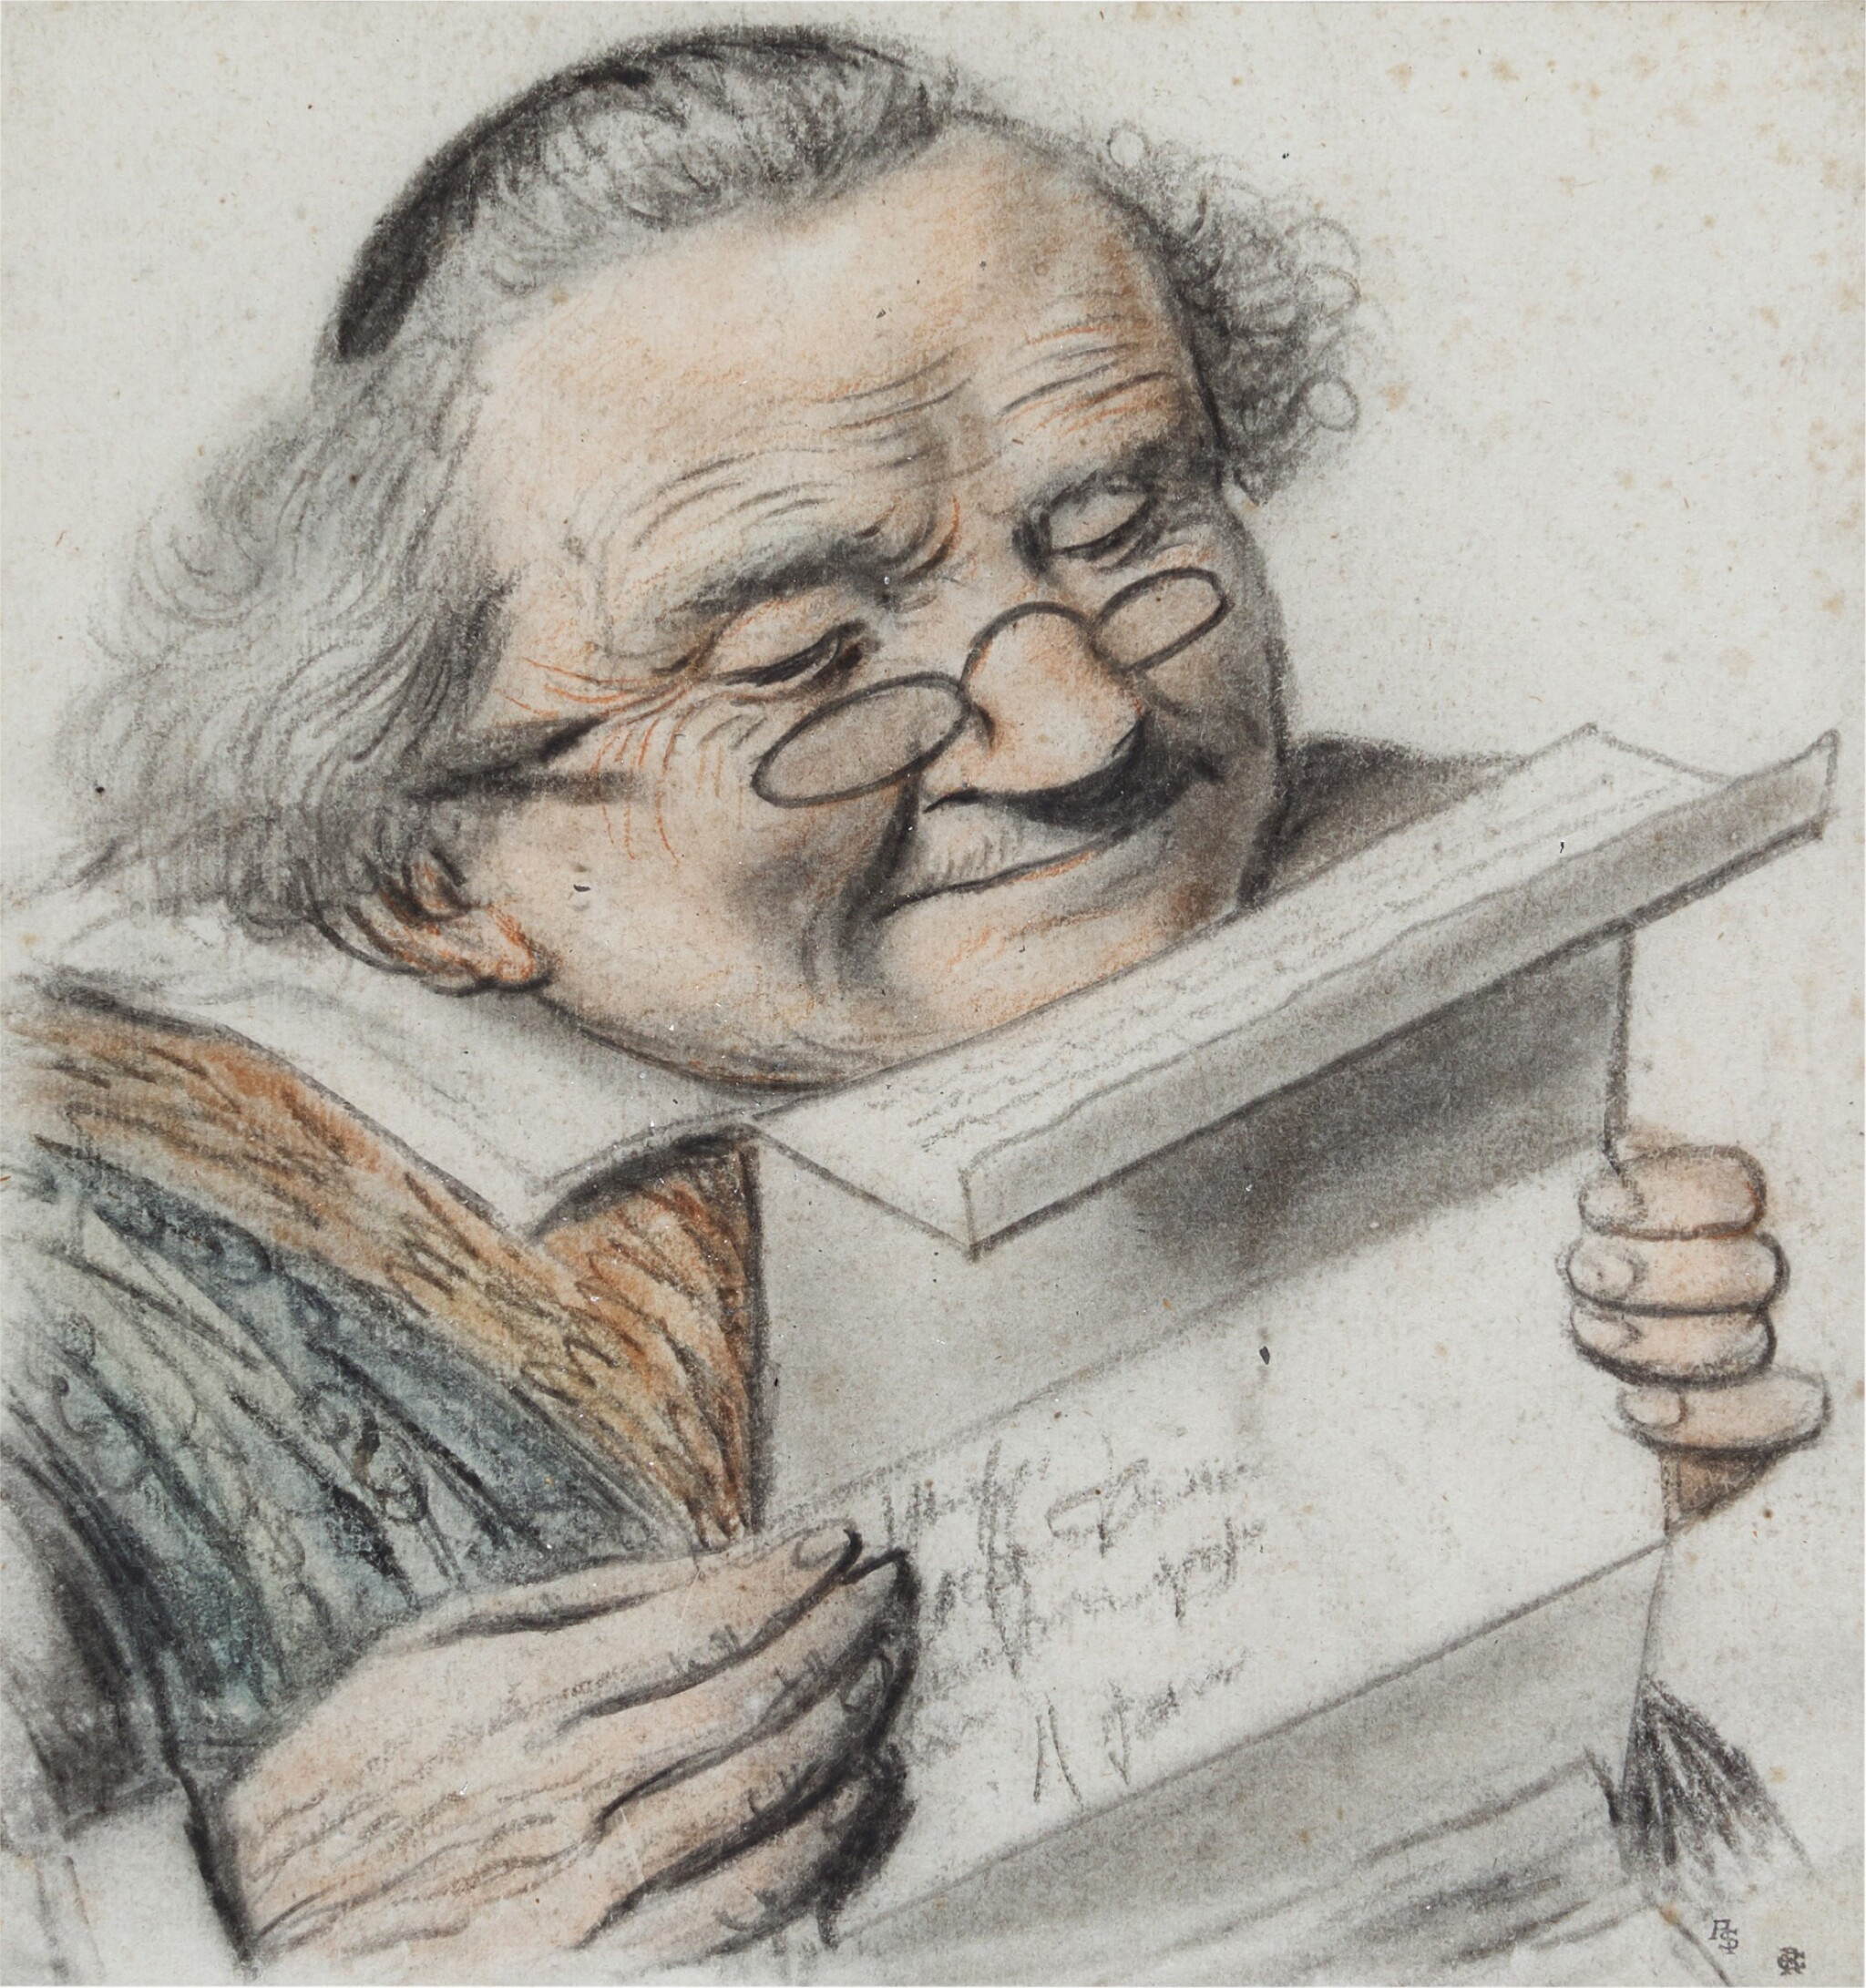 View 1 of Lot 21. A cleric reading a letter, wearing spectacles.